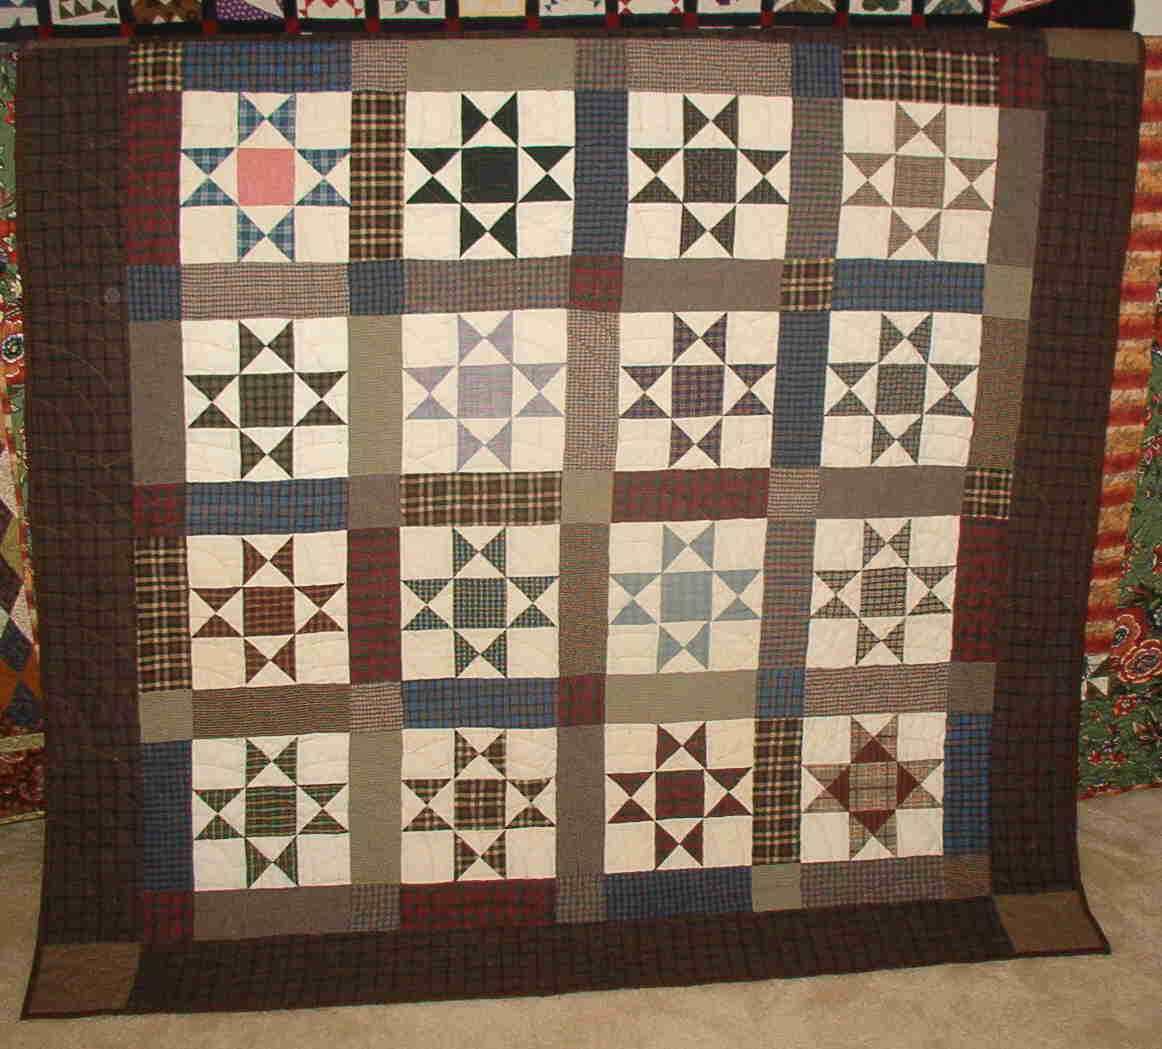 Disappearing Hour Glass Quilt Free Pattern | Quilting | Pinterest ... : ohio star quilt pattern free - Adamdwight.com